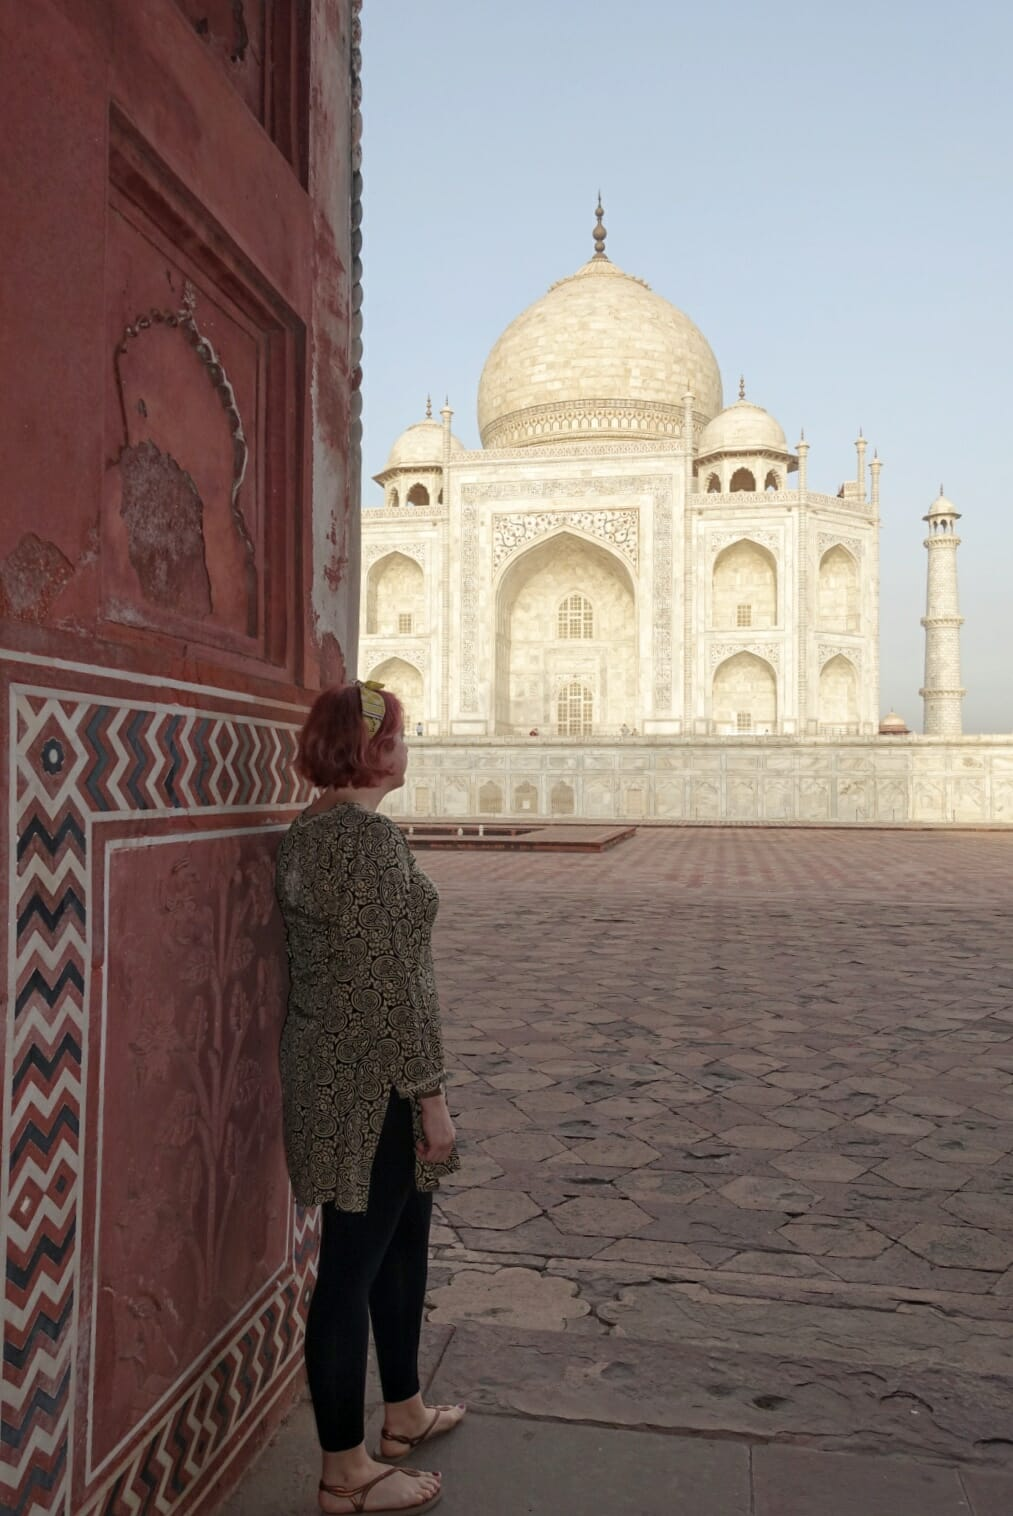 What to wear as a woman in India - visiting the Taj Mahal